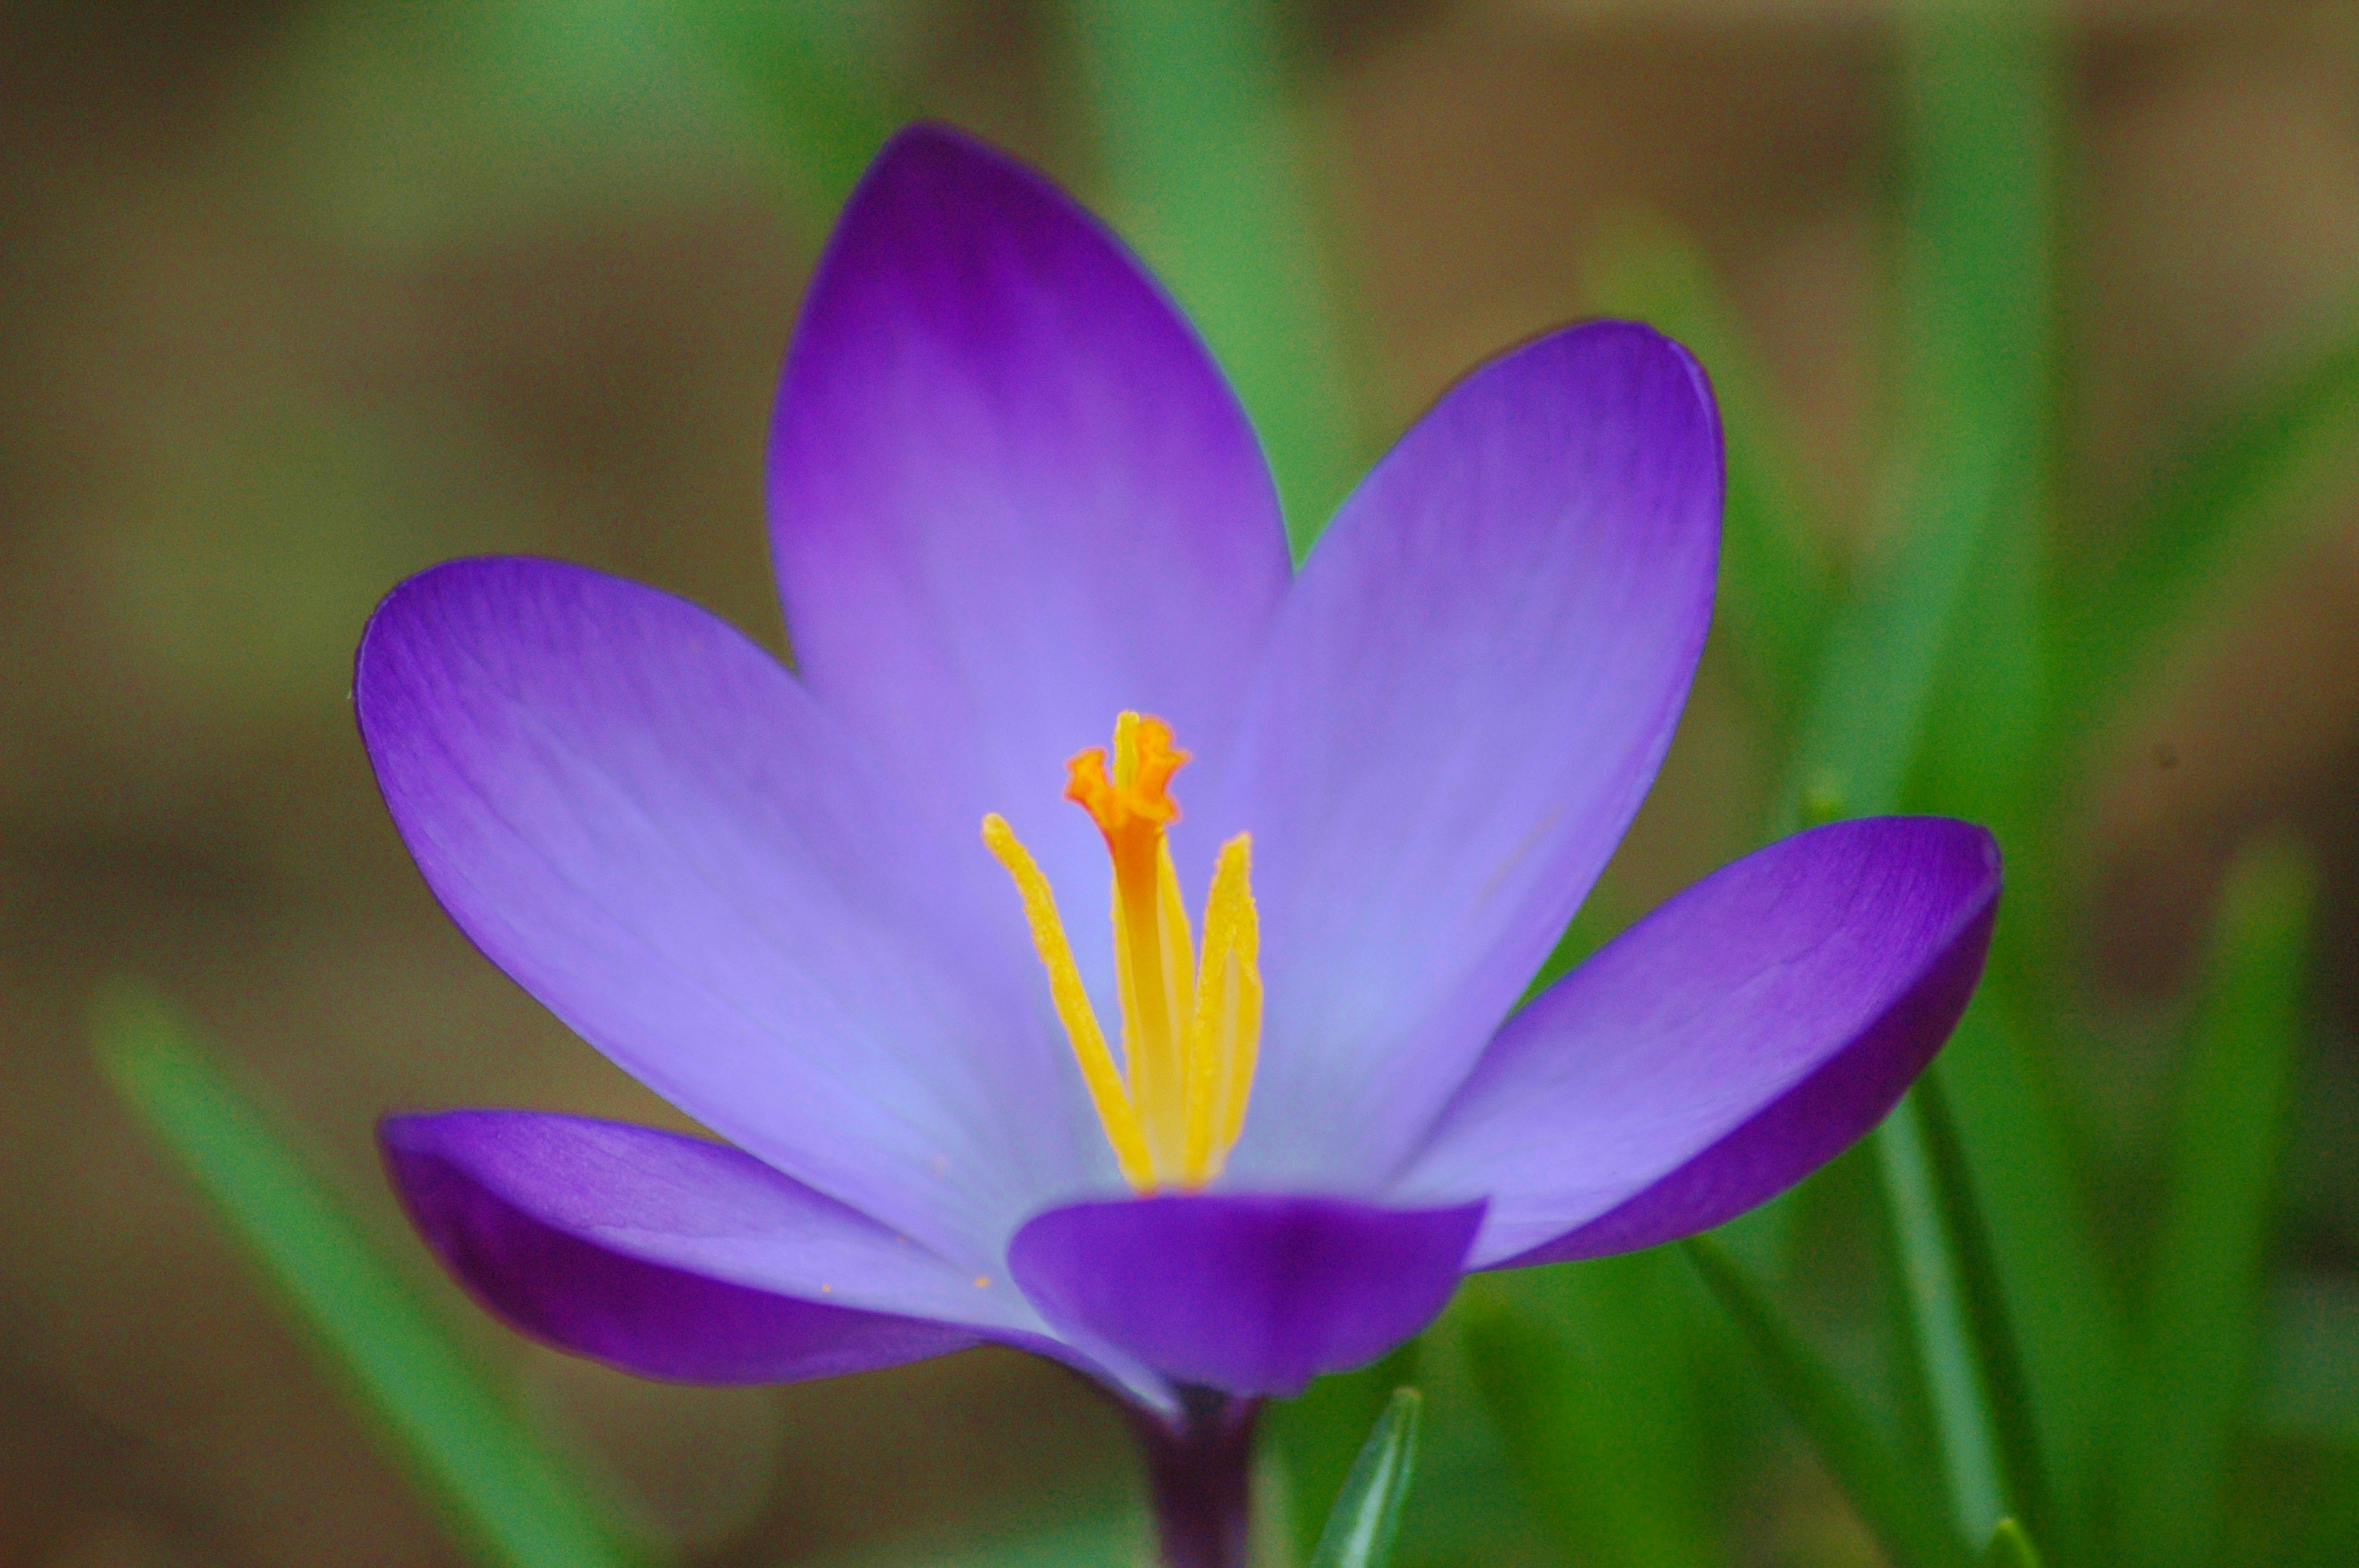 crocus flower photos